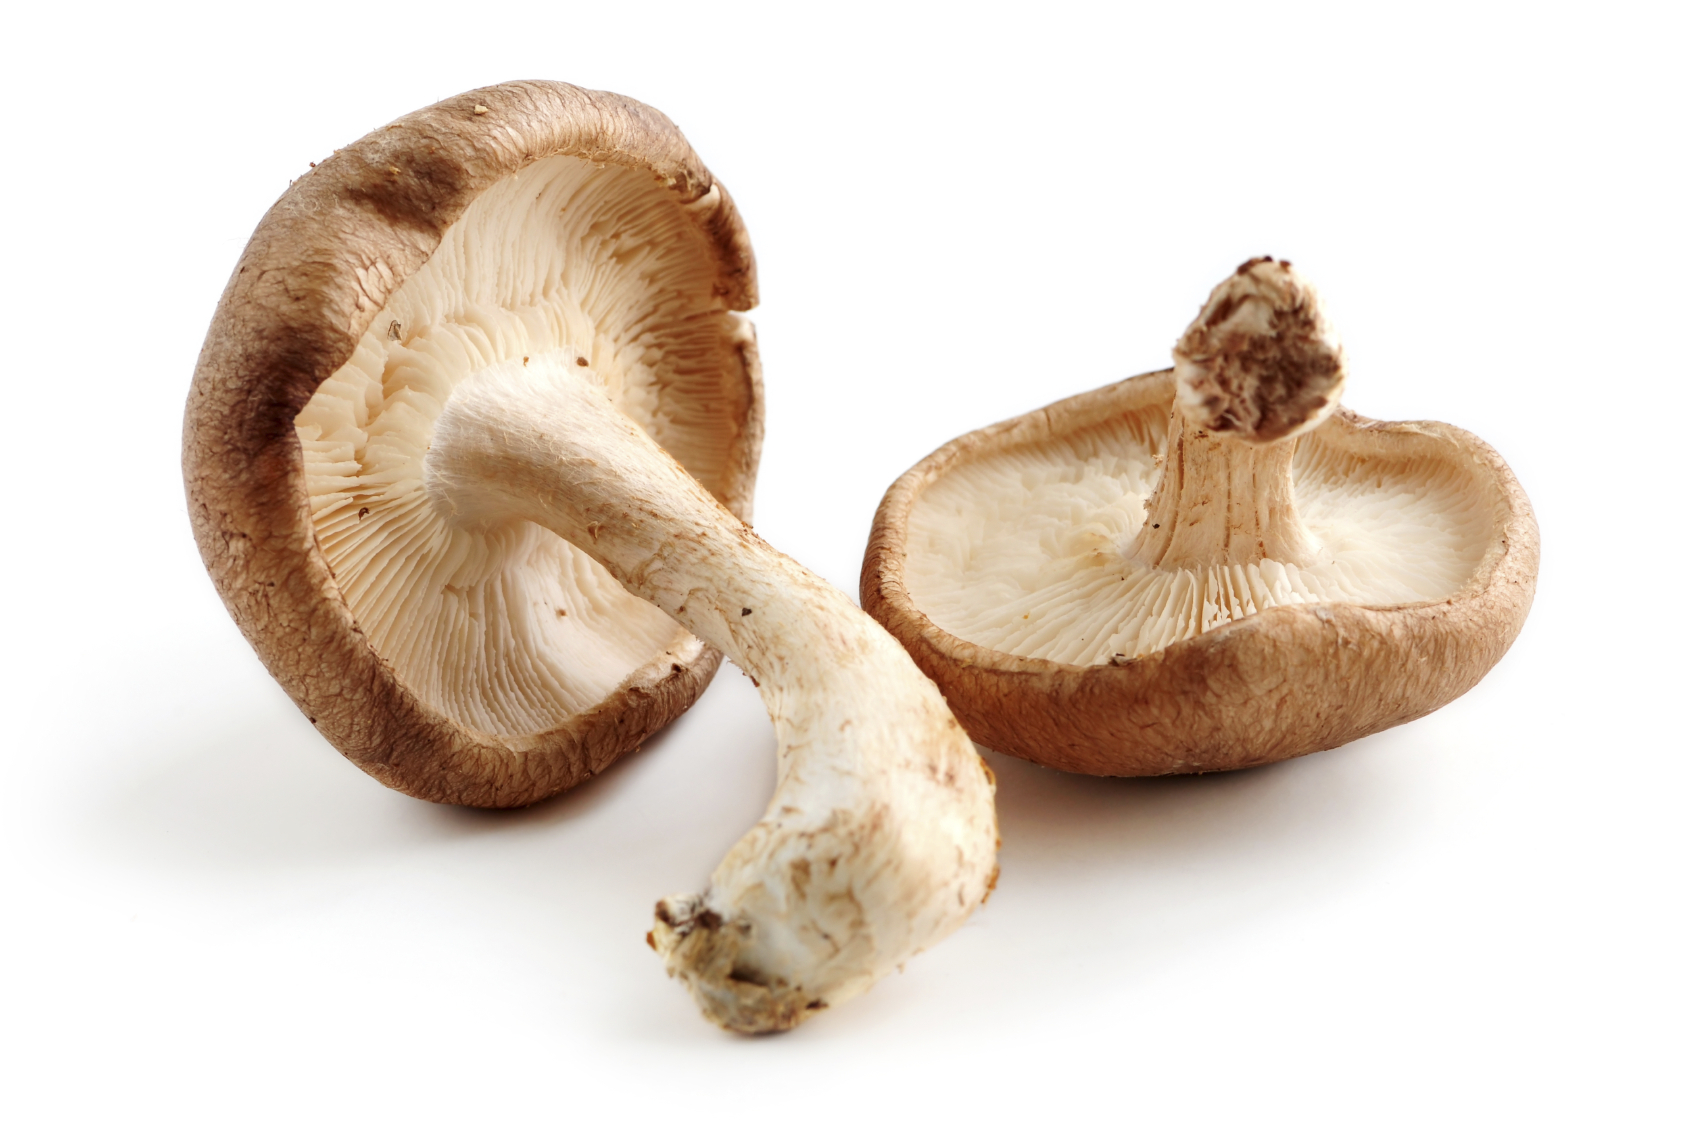 Shiitake mushrooms contain a powerful compound that may help prevent cervical cancer.